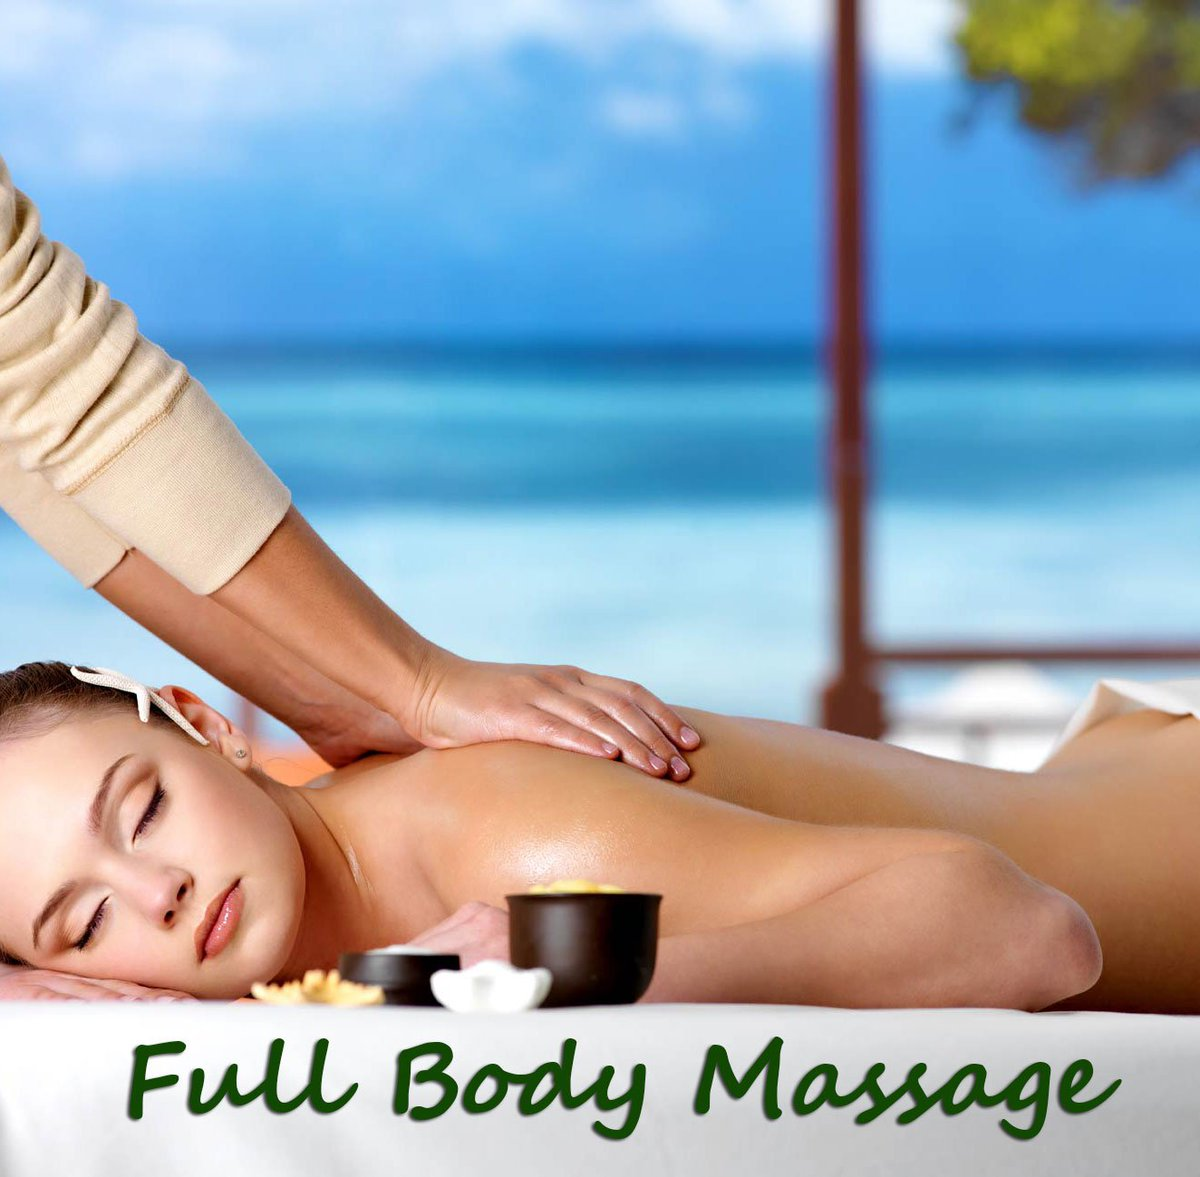 Where Can I Get Full Body Massage Curlz Salon On Twitter